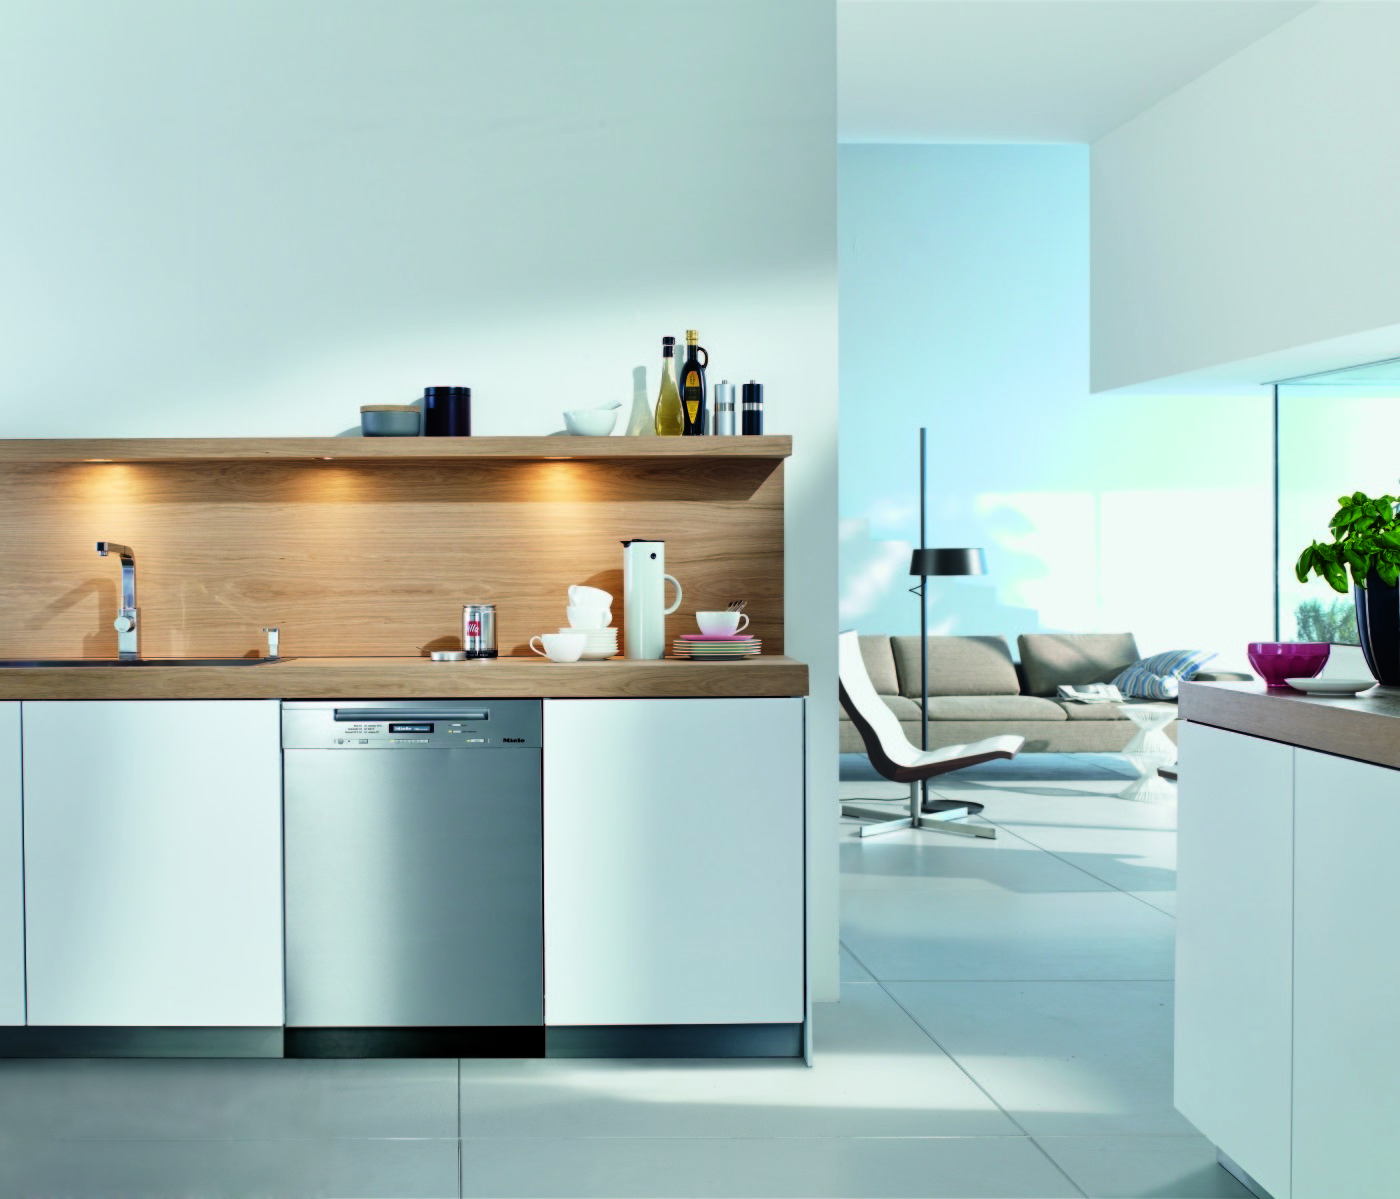 Miele G6305SCUS Full Console Dishwasher with 9 Wash Cycles, 3 Wash ...